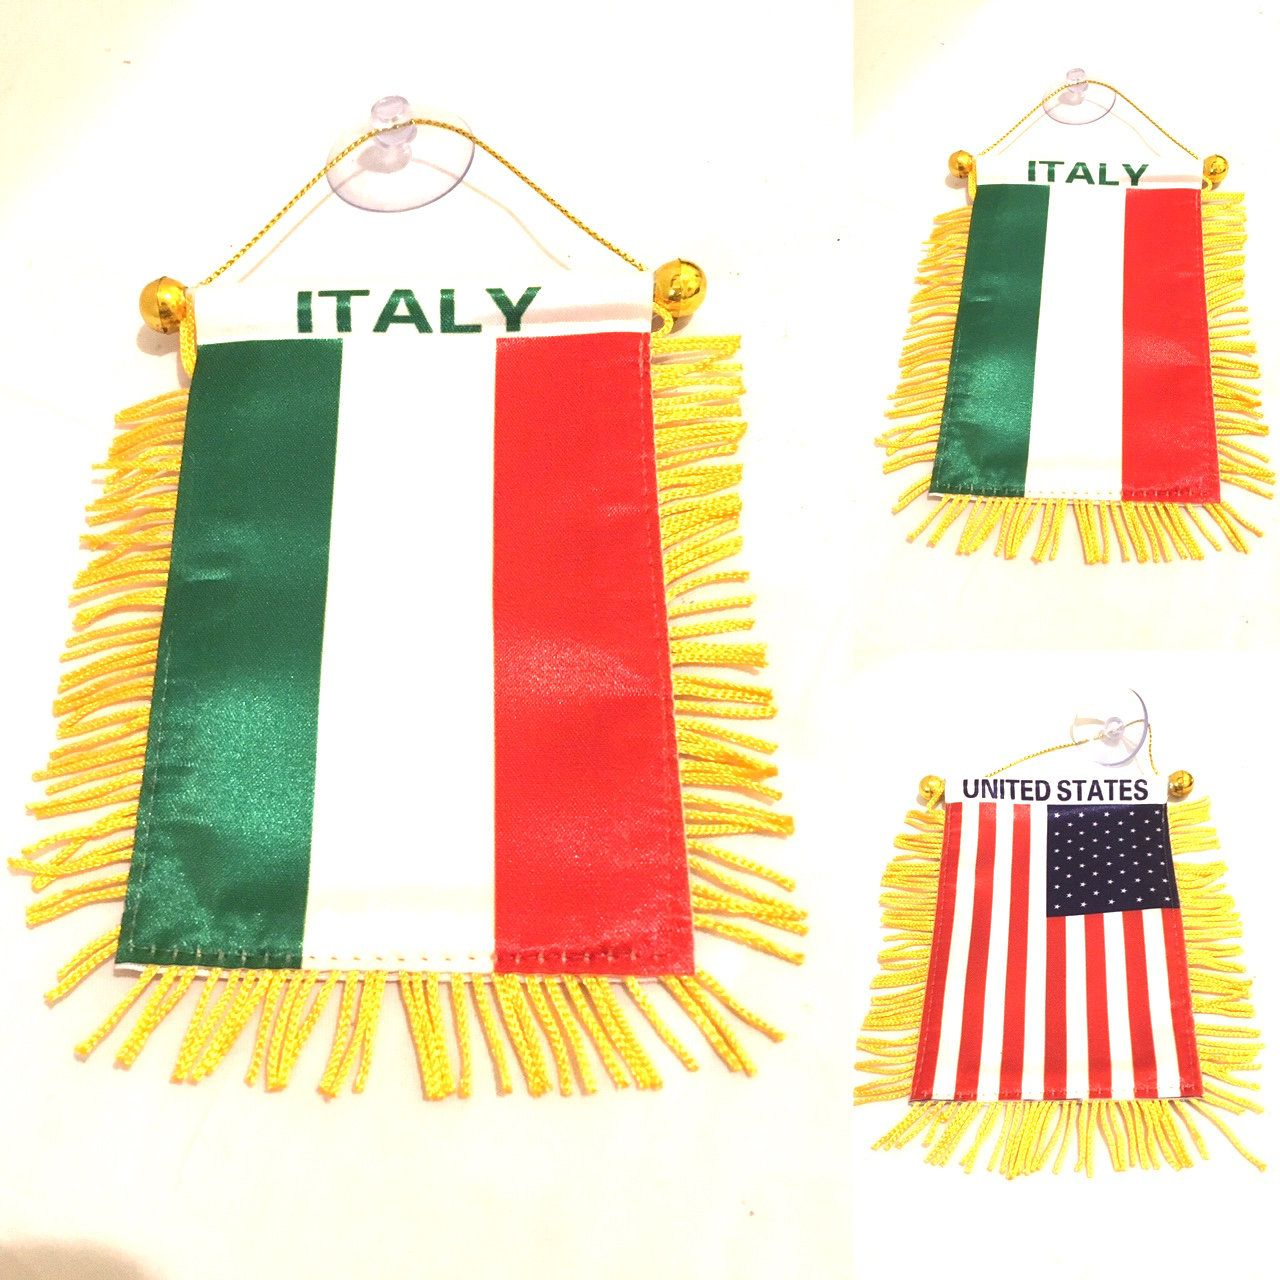 Italy American flag for Automobile cars Home Small 4x6